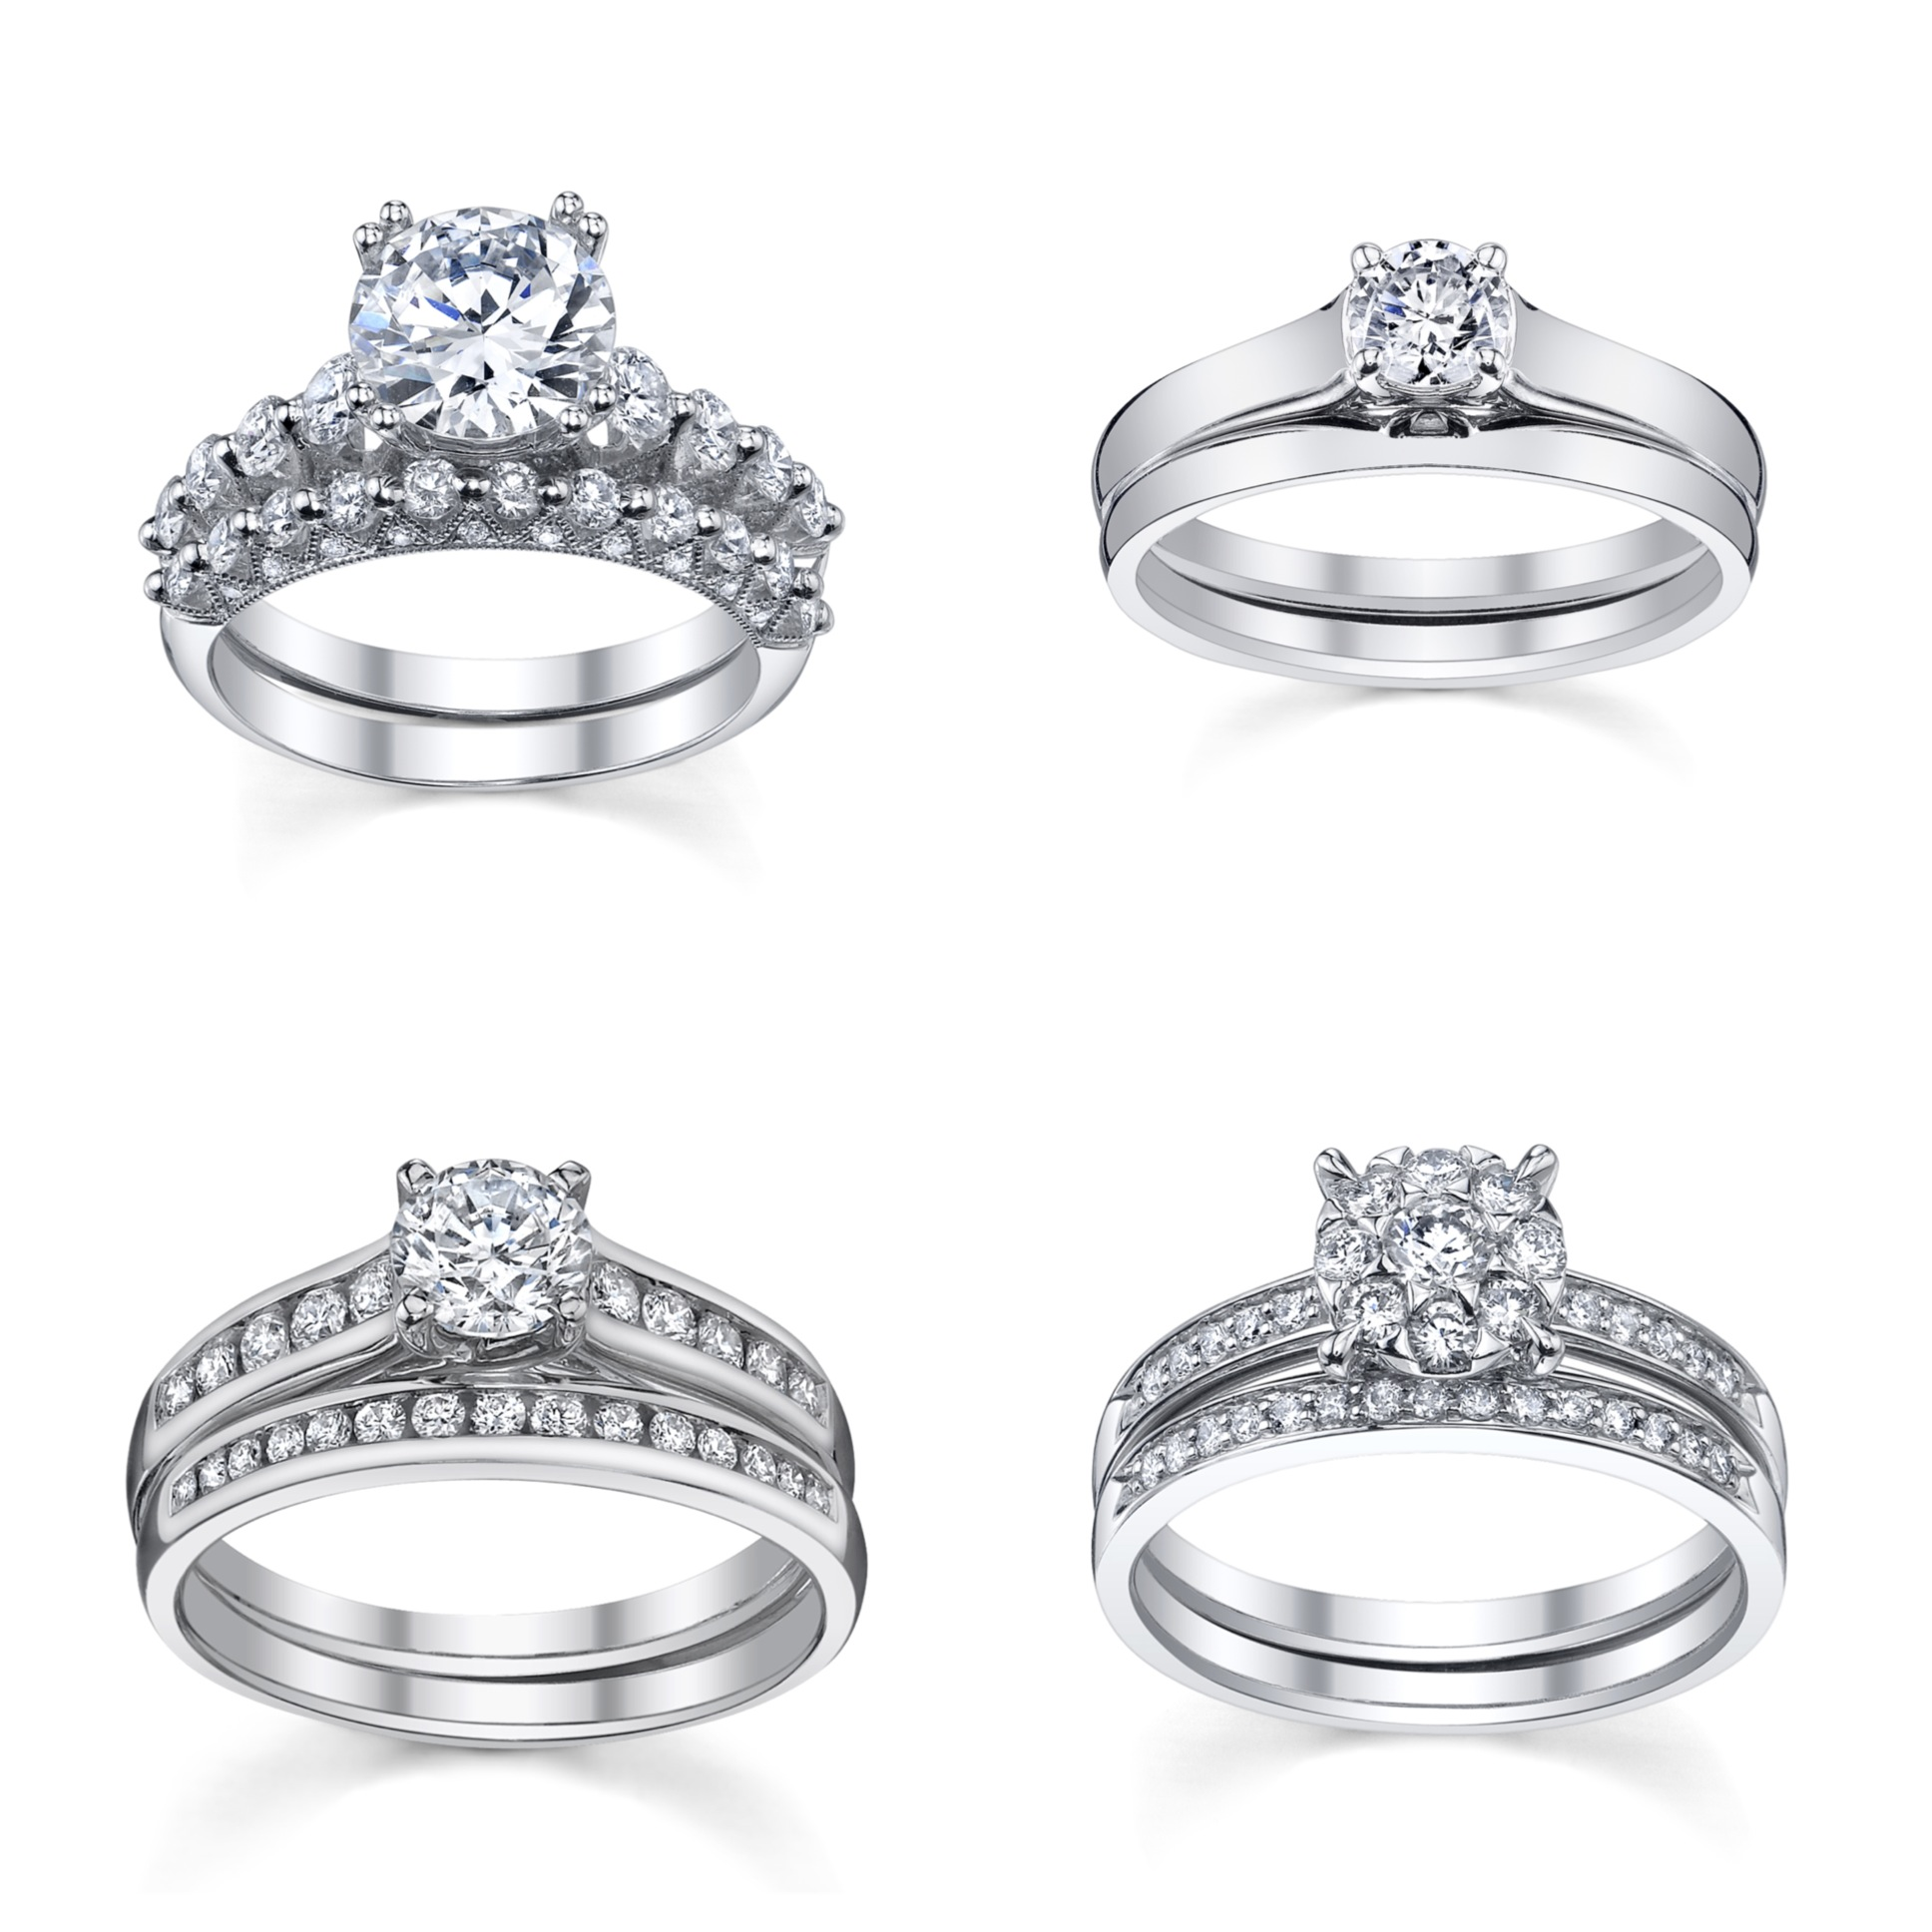 Engagement And Wedding Ring Sets From Robbins Brothers